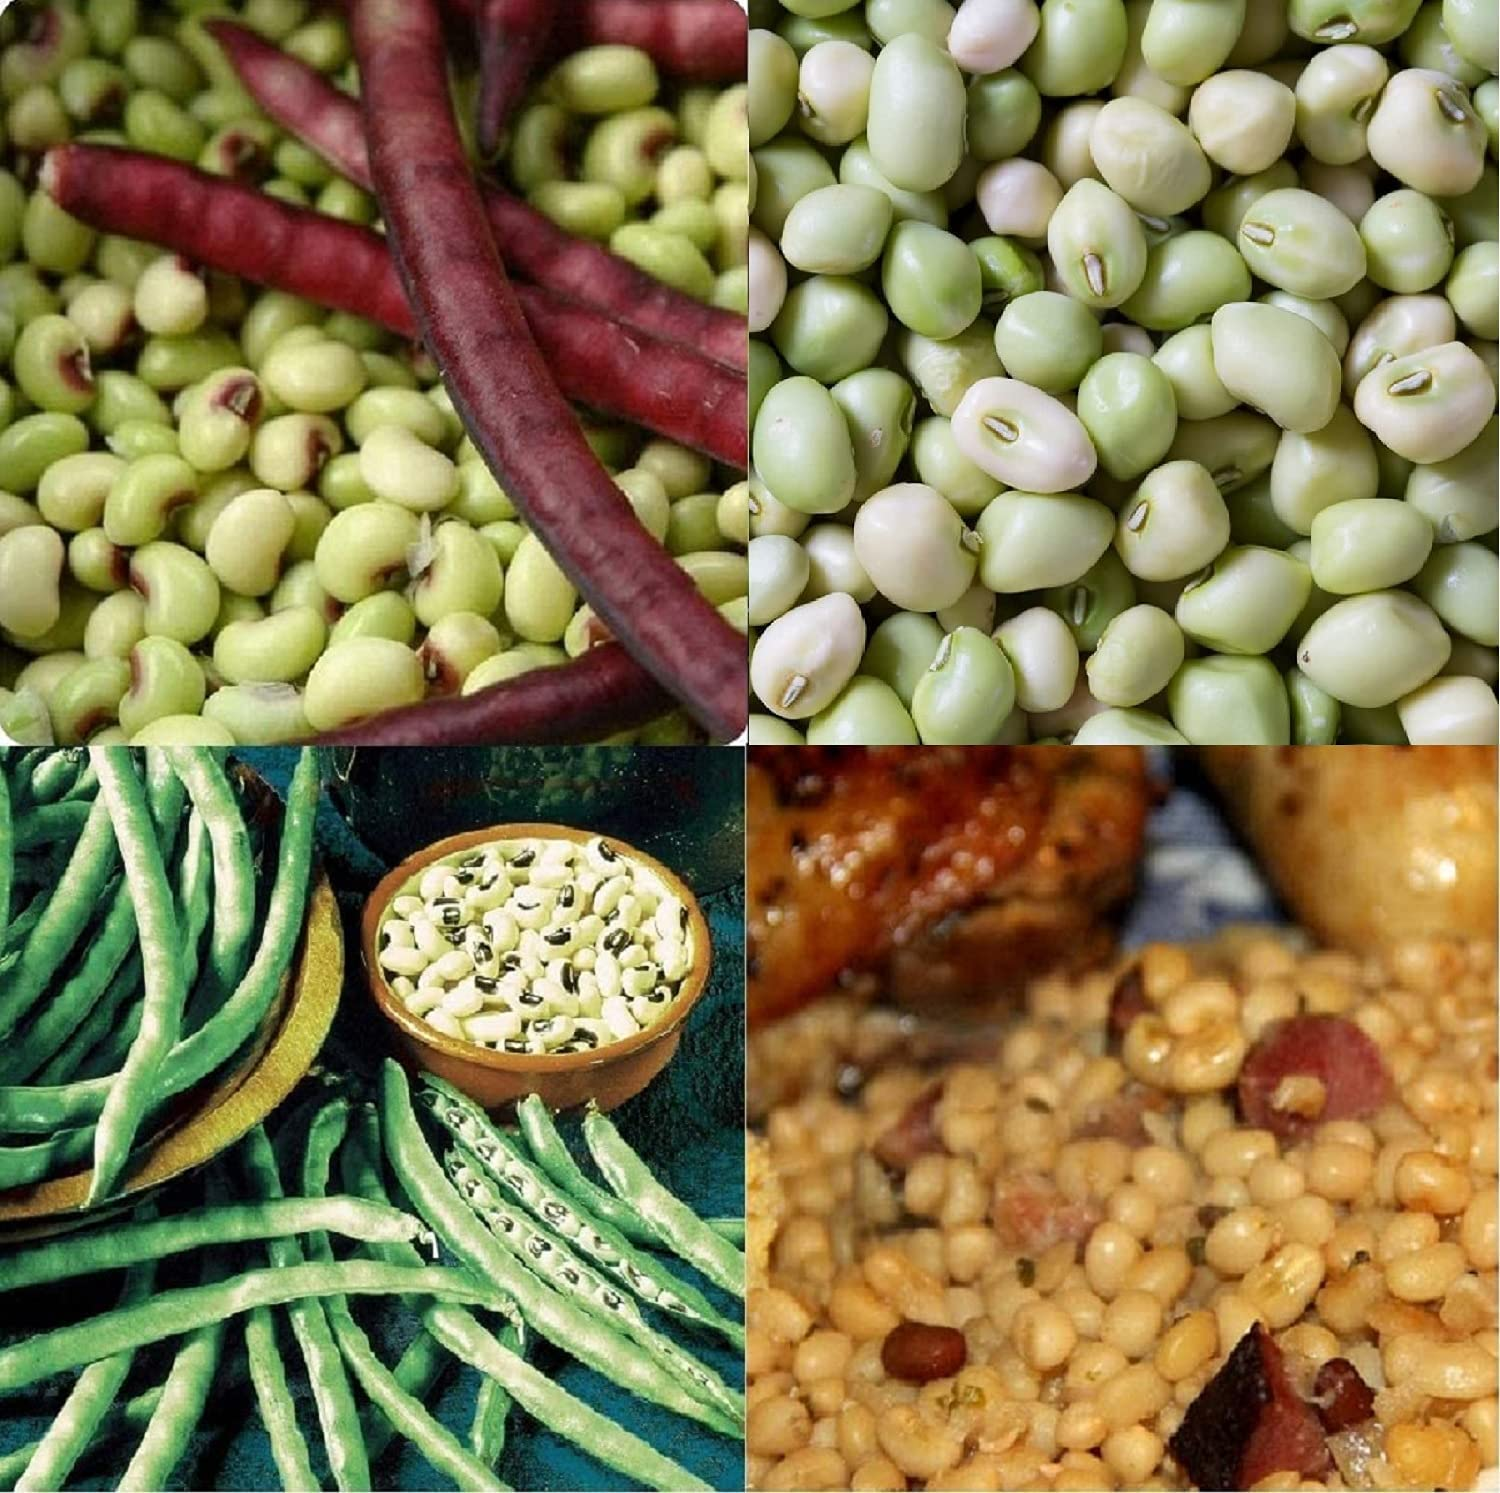 David's Garden Seeds Collection Set Southern Pea (Cowpea) 3333 (Multi) 4 Varieties 400 Non-GMO, Open Pollinated Seeds